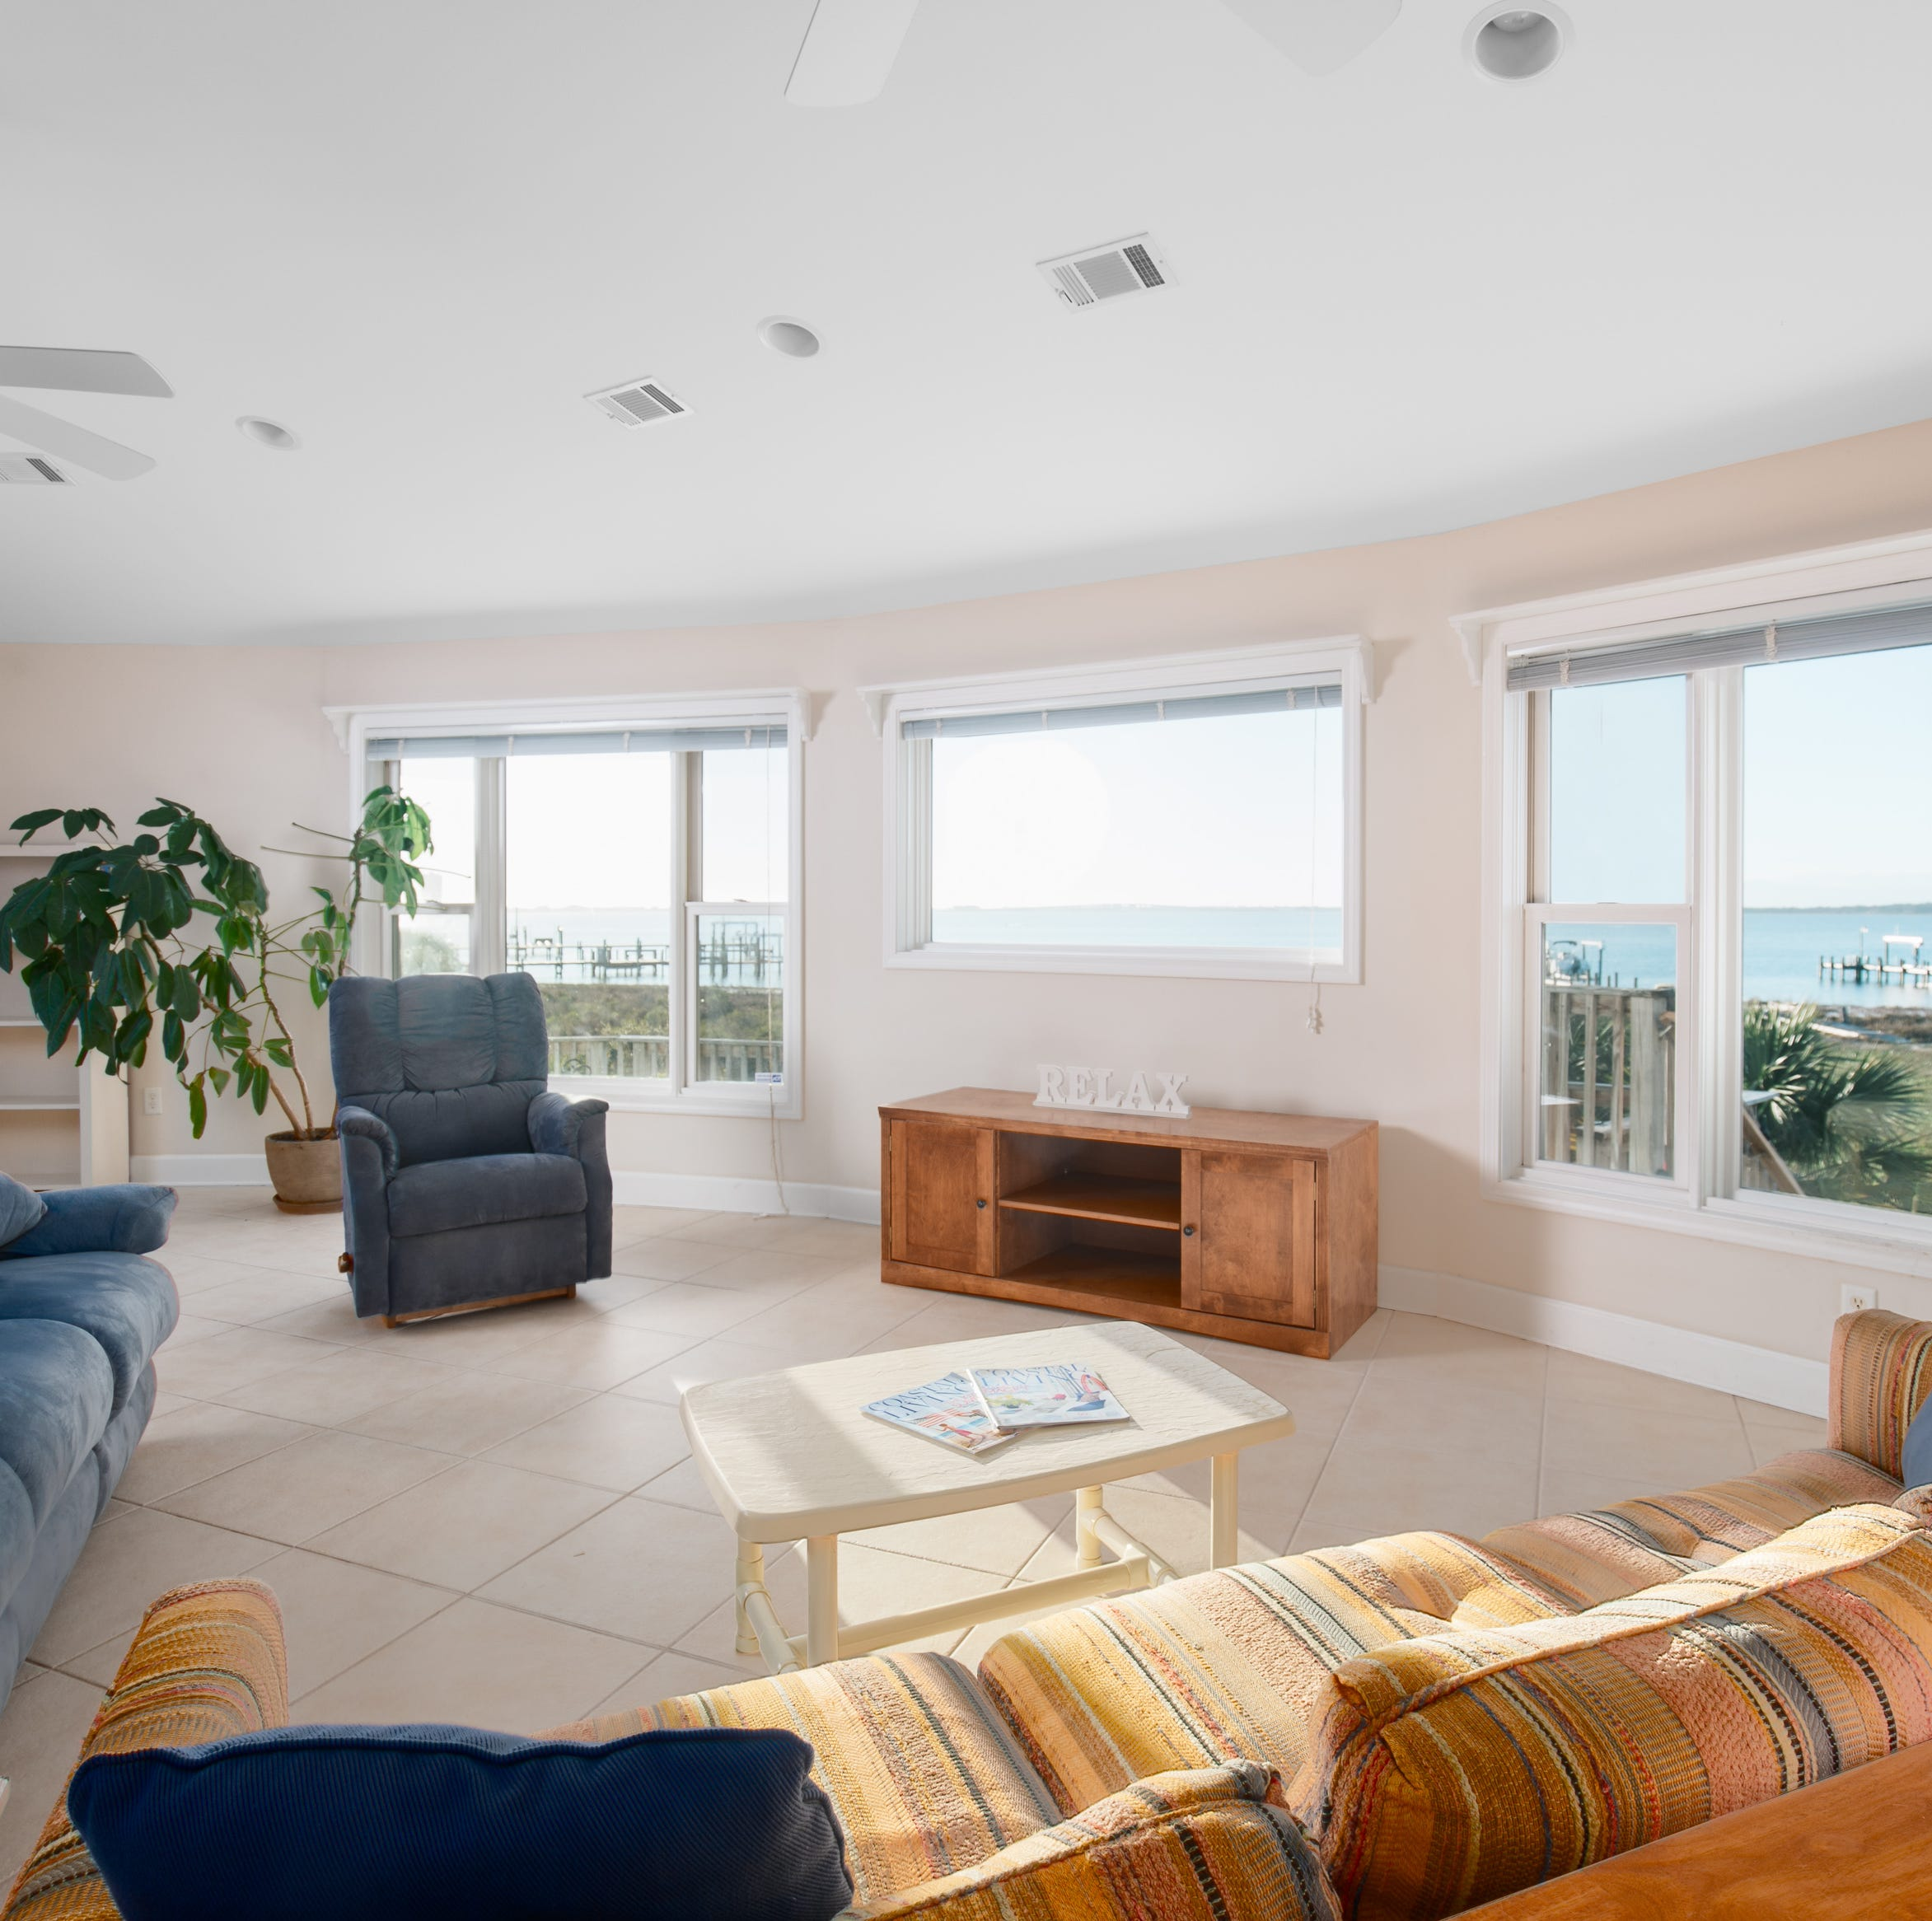 Hot property: Pensacola Beach home wows with Panoramic views, outdoor entertaining options